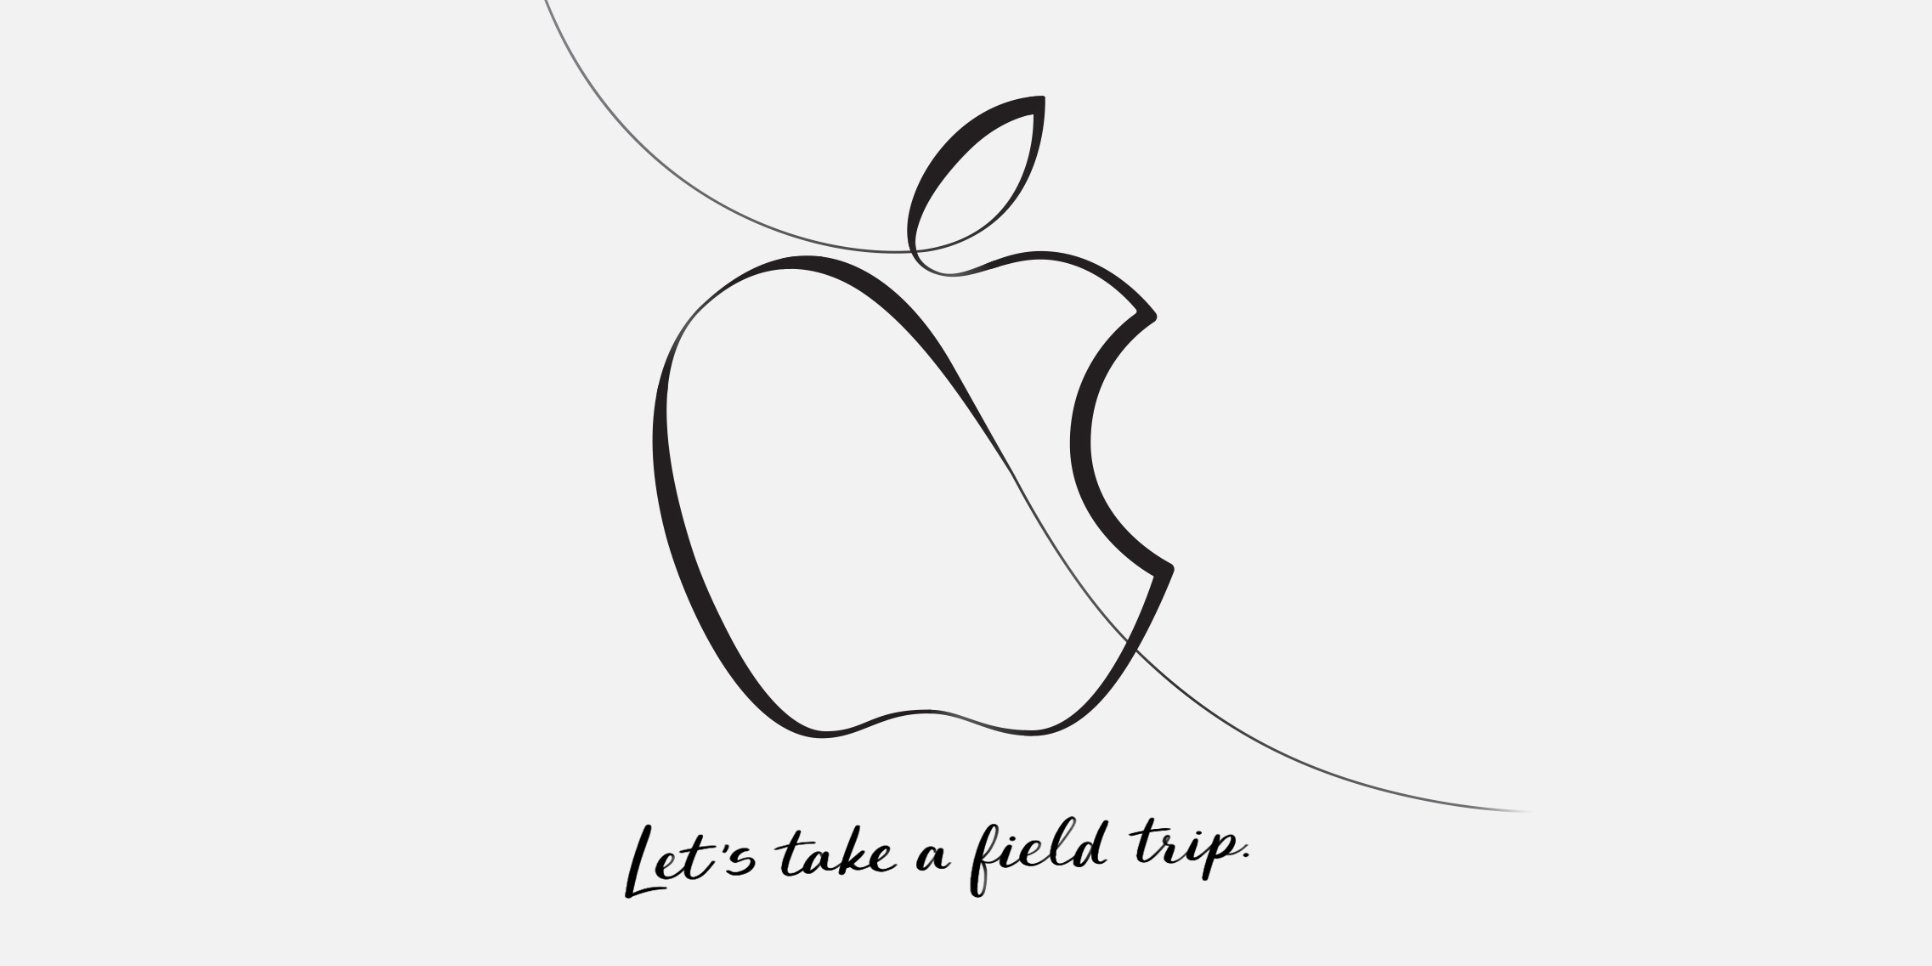 apple keynote 27 mars - Apple : les 3 chiffres importants de la keynote